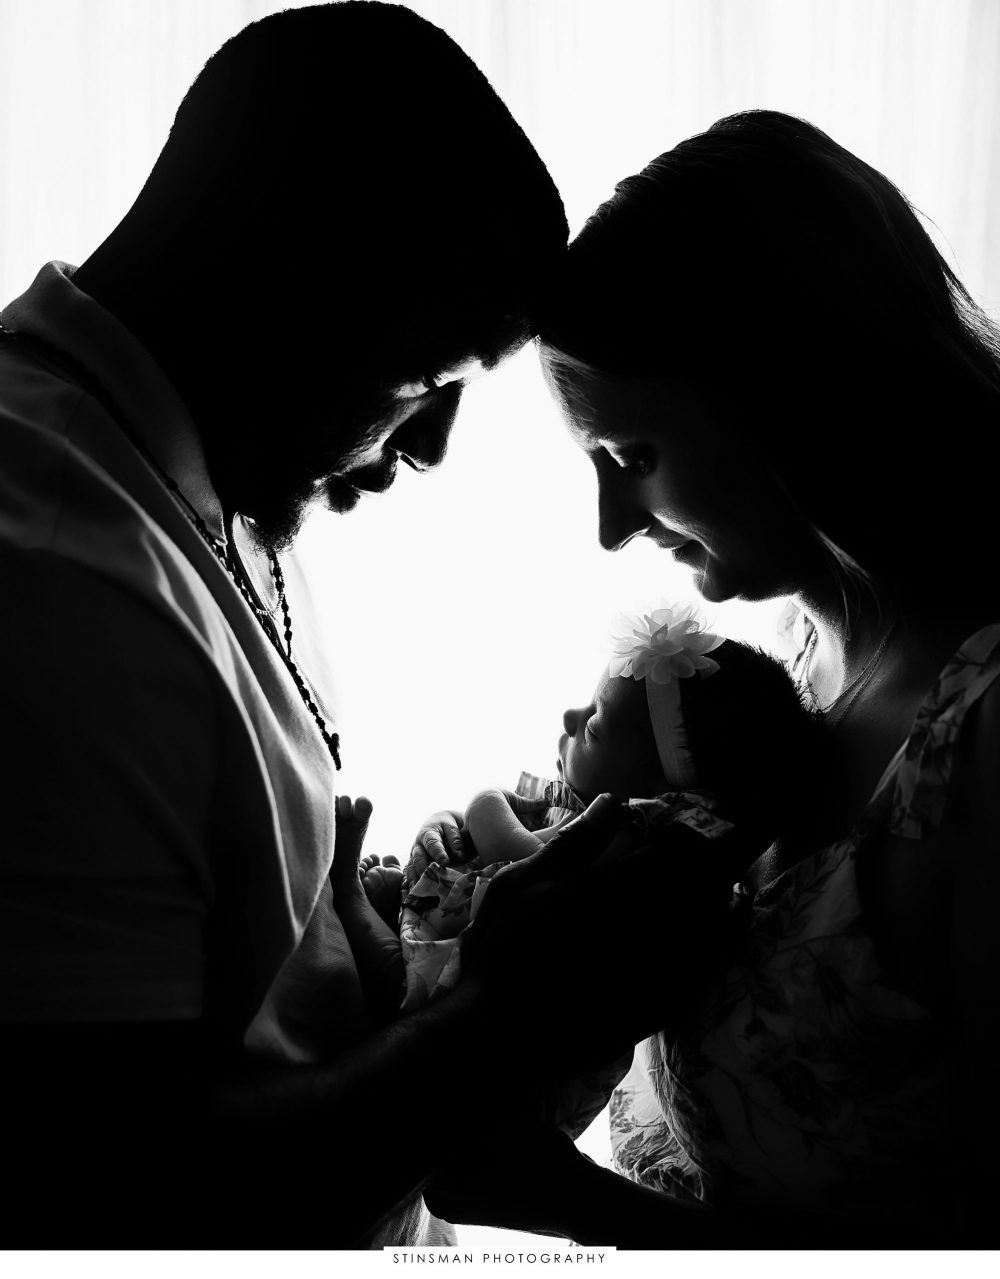 Mom and dad snuggling baby girl at their newborn photoshoot